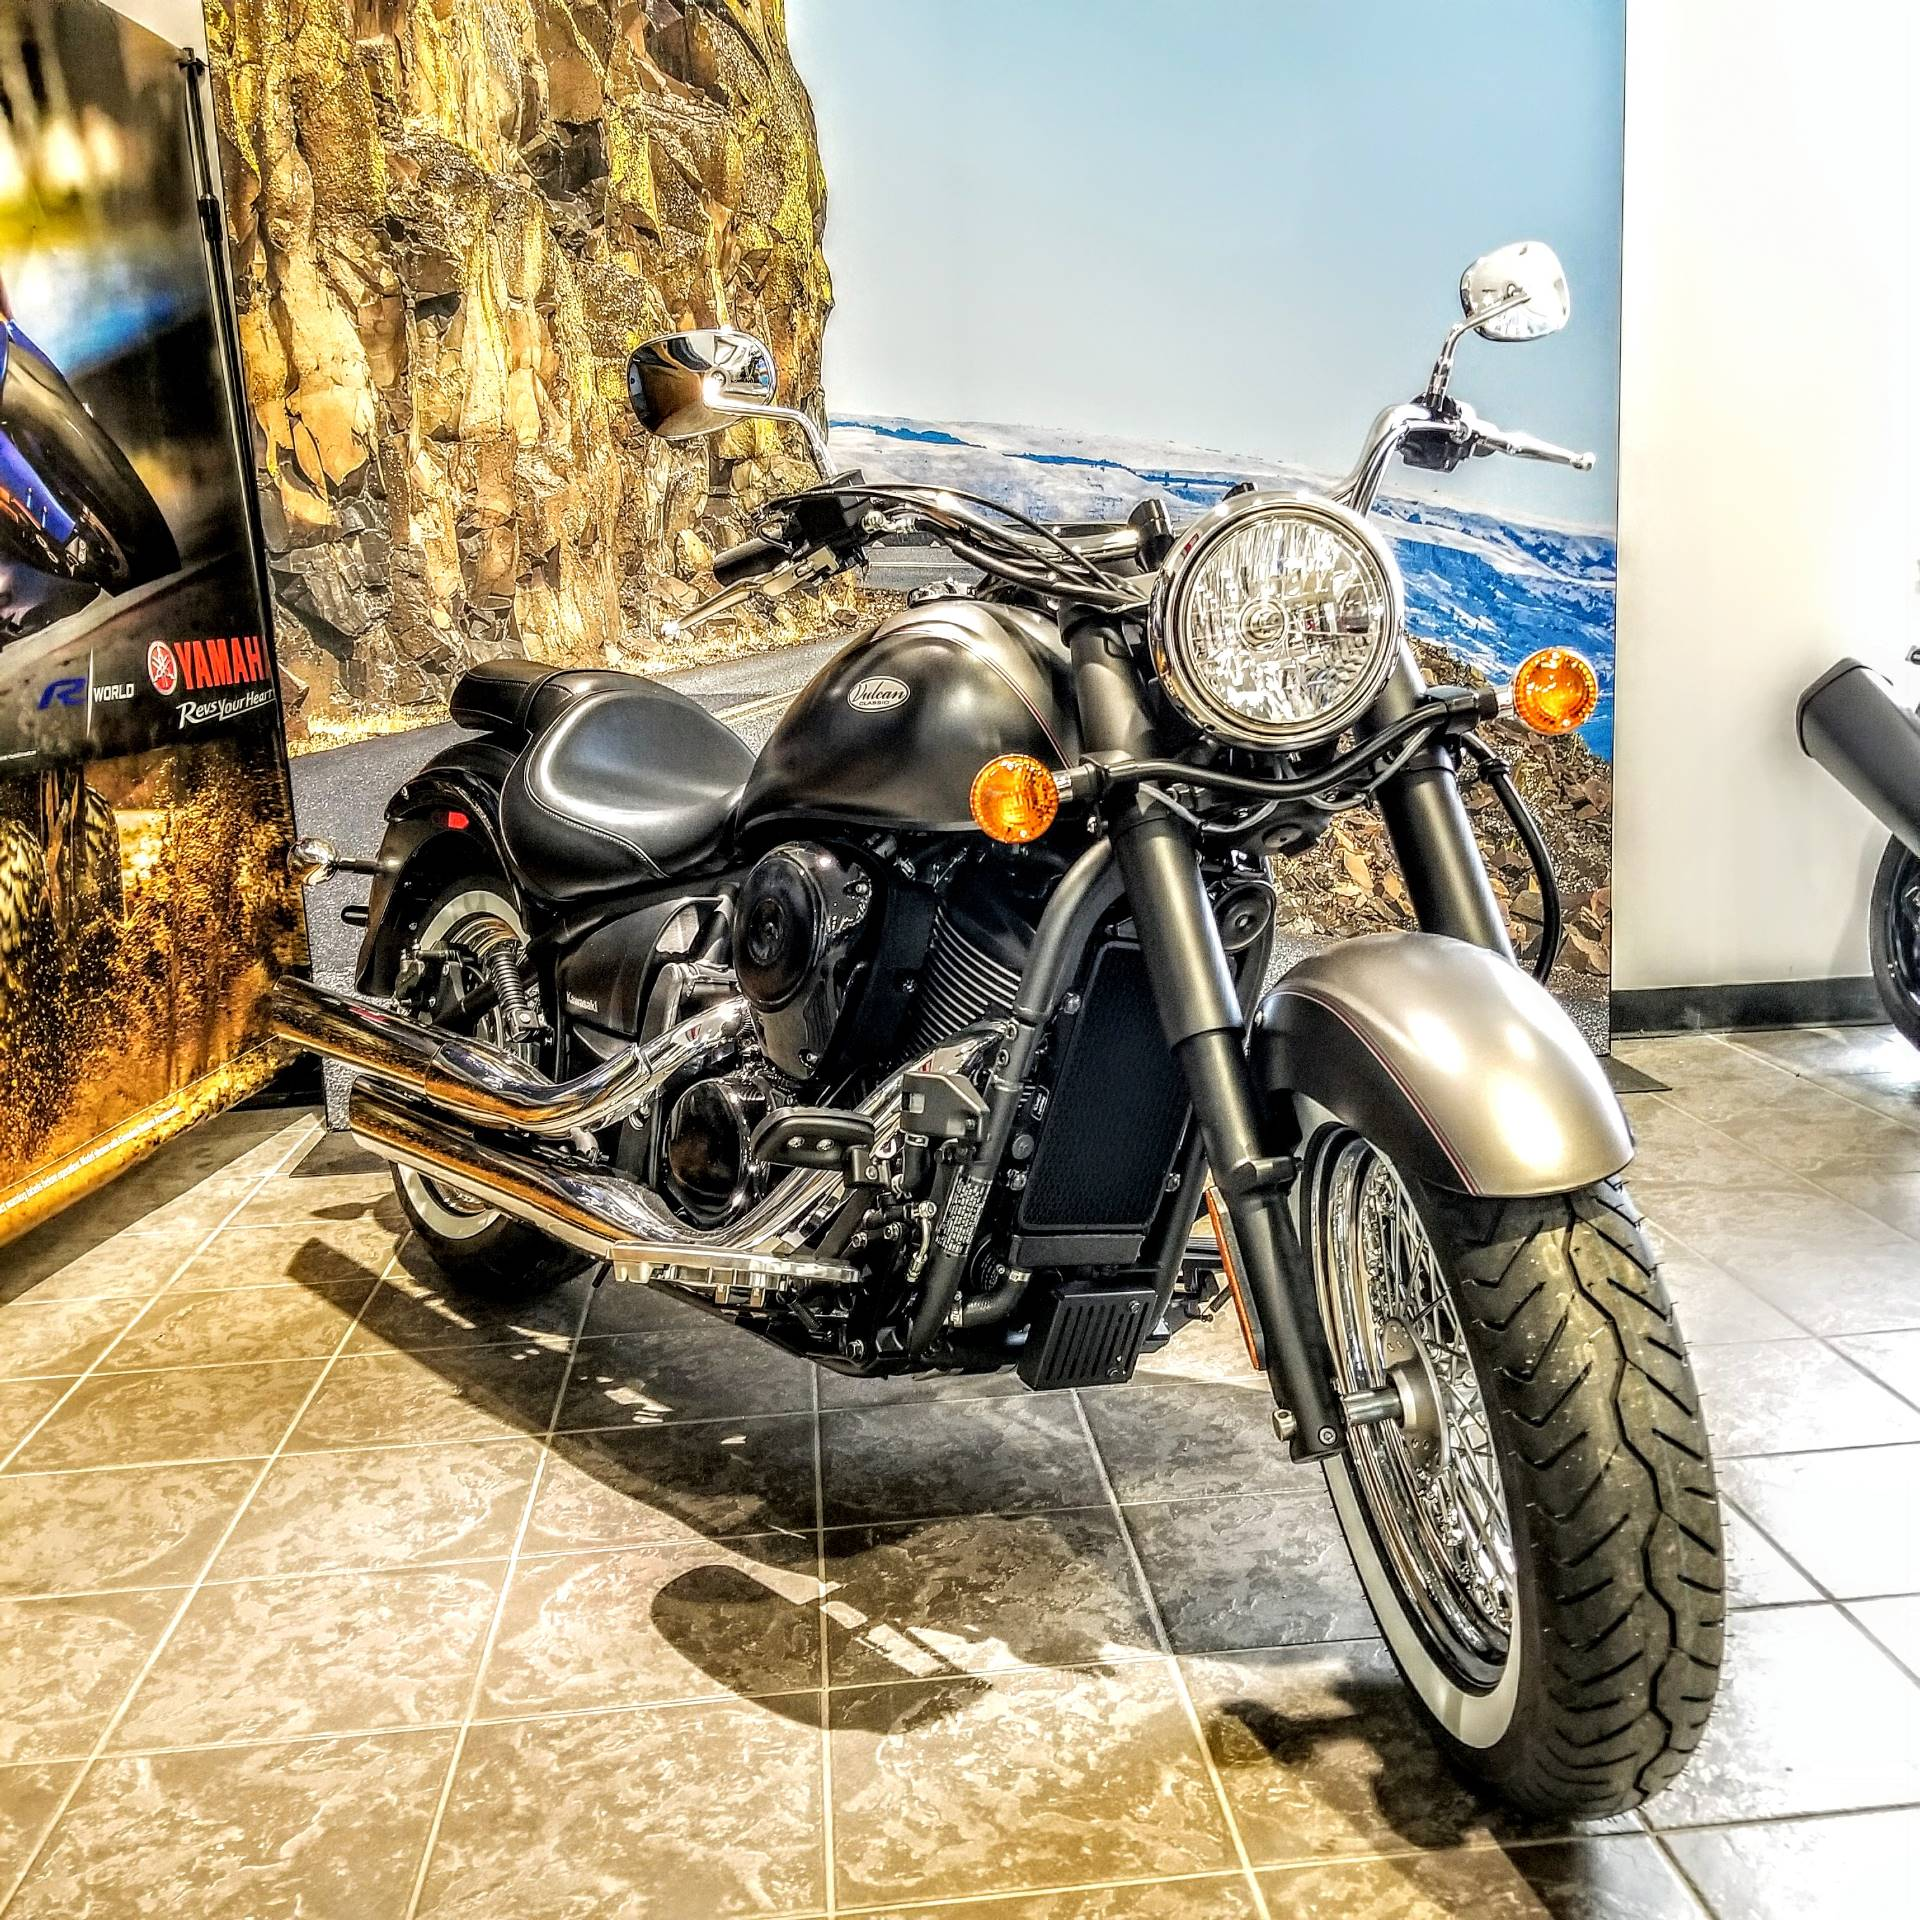 2018 Kawasaki Vulcan 900 Classic in Hickory, North Carolina - Photo 1